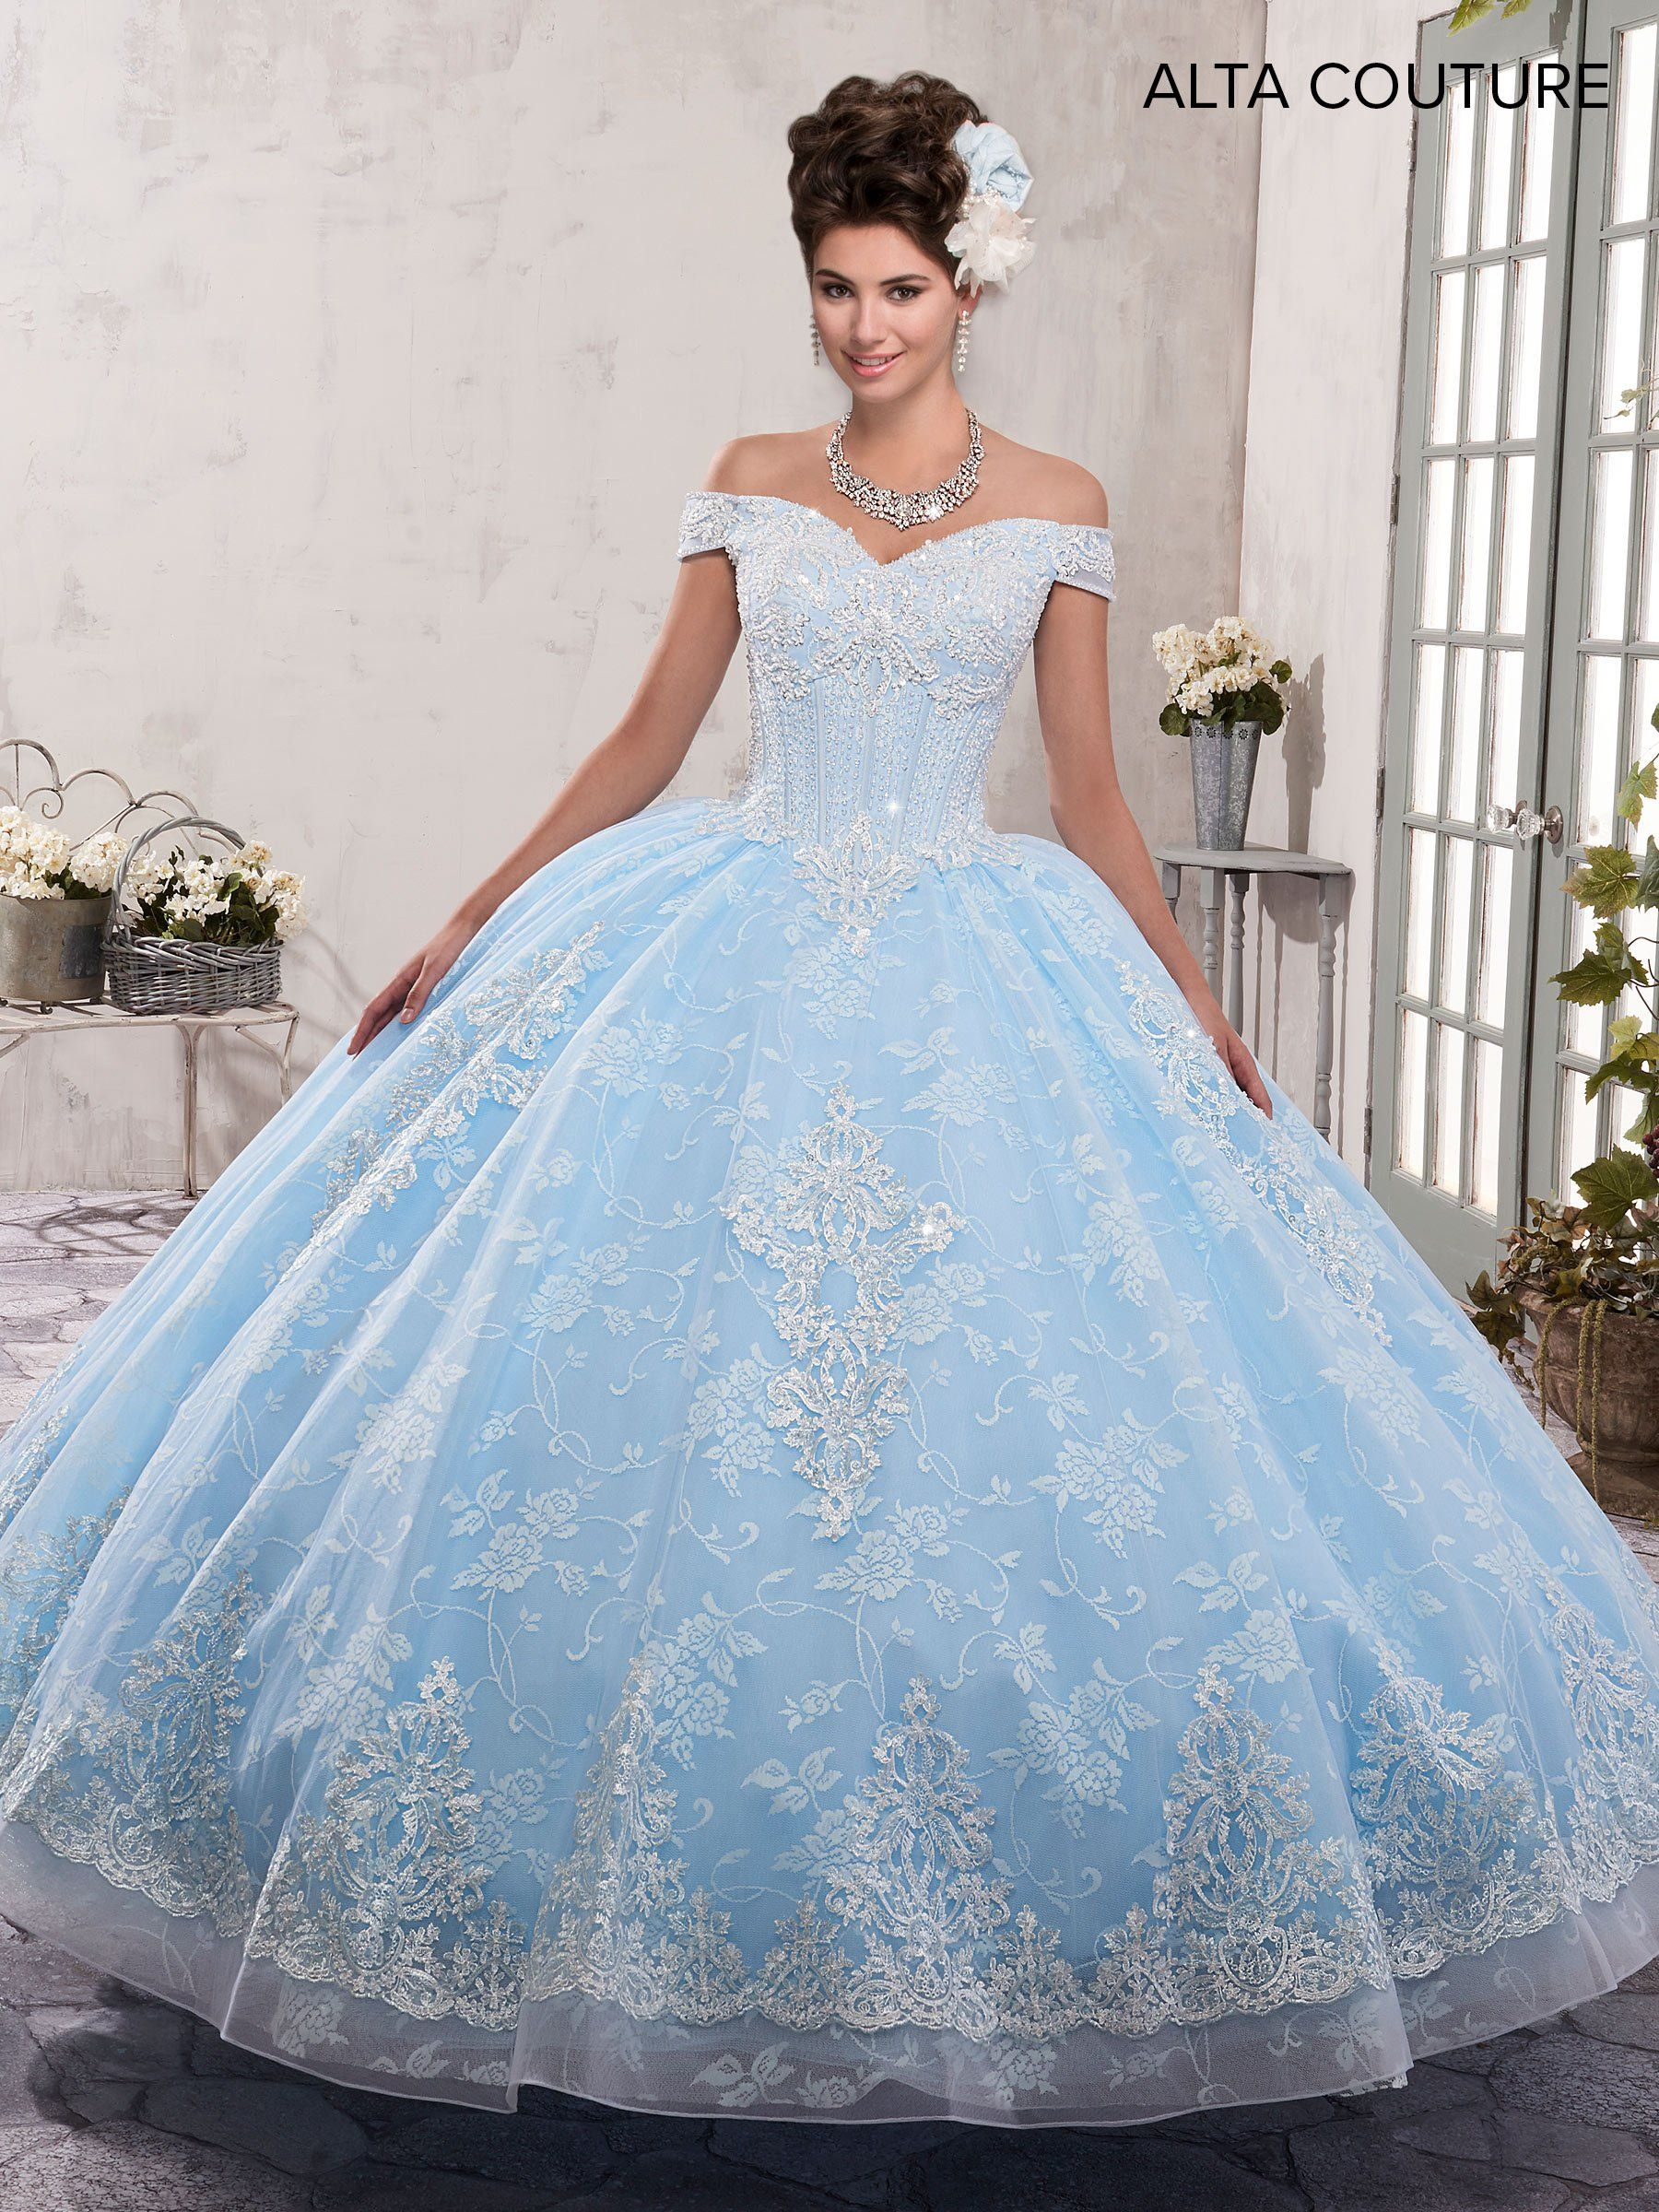 9b0c0c580 Alta Couture Collection MQ3001 Marys Quinceanera - QuinceDresses.com.   quinceaneradress  quinceaneracollection  misquinces  bestombres  fashion   style ...